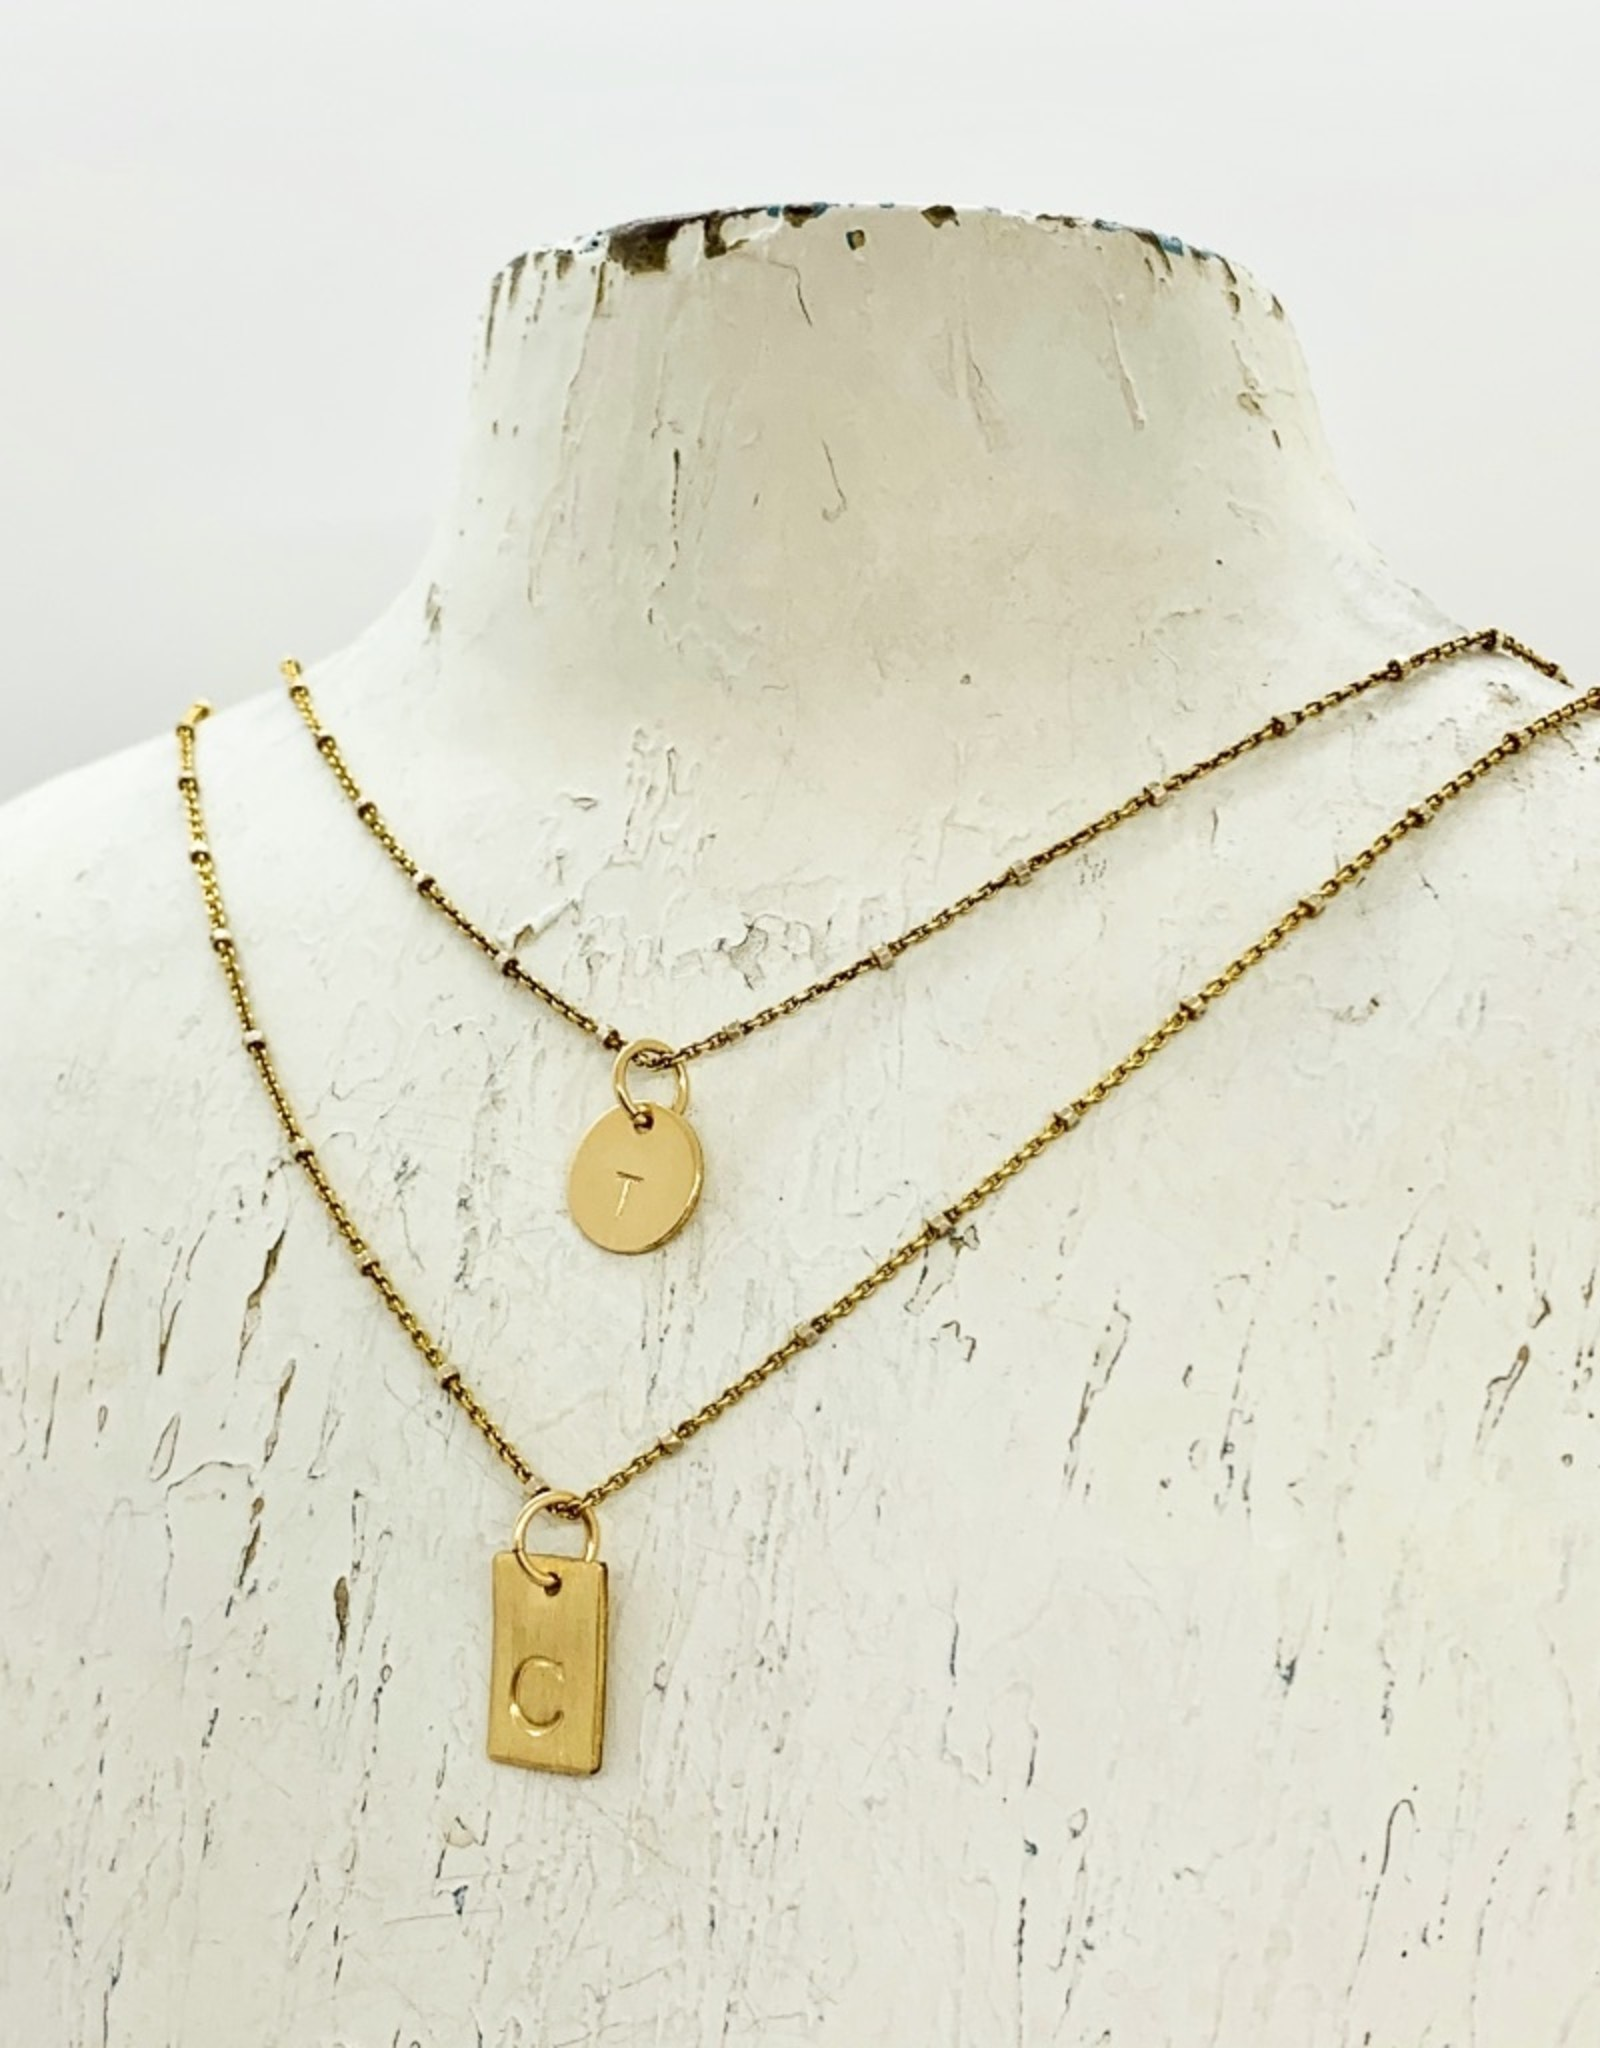 Gold Filled Initial Charm Pendant